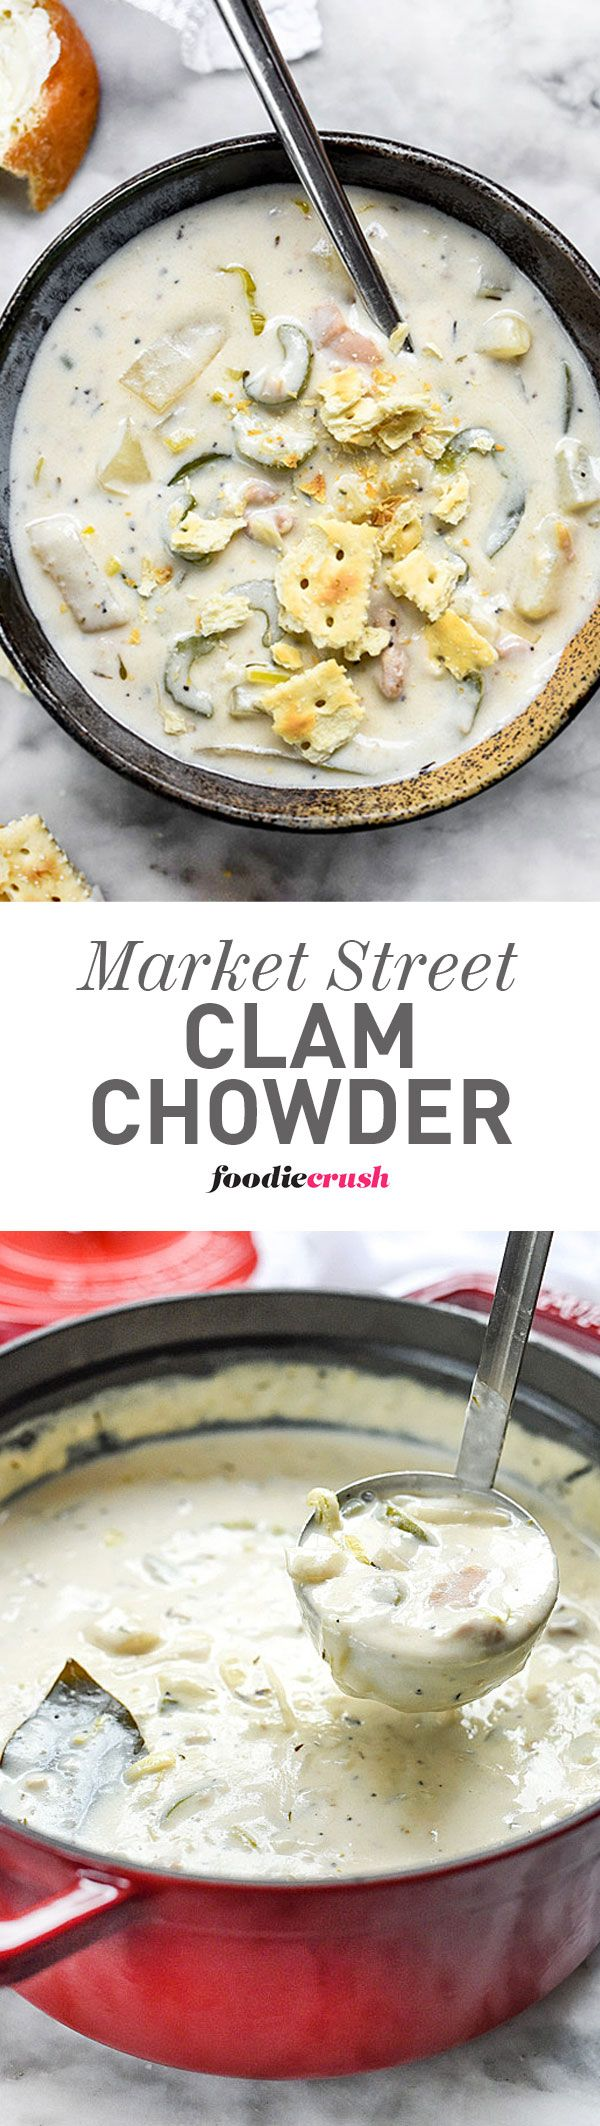 This clam chowder recipe is an institution at Salt Lake City's Market Street Grill where I met my husband. I always get it when I go there but now I make it even more often at home. It's so good. | foodiecrush.com